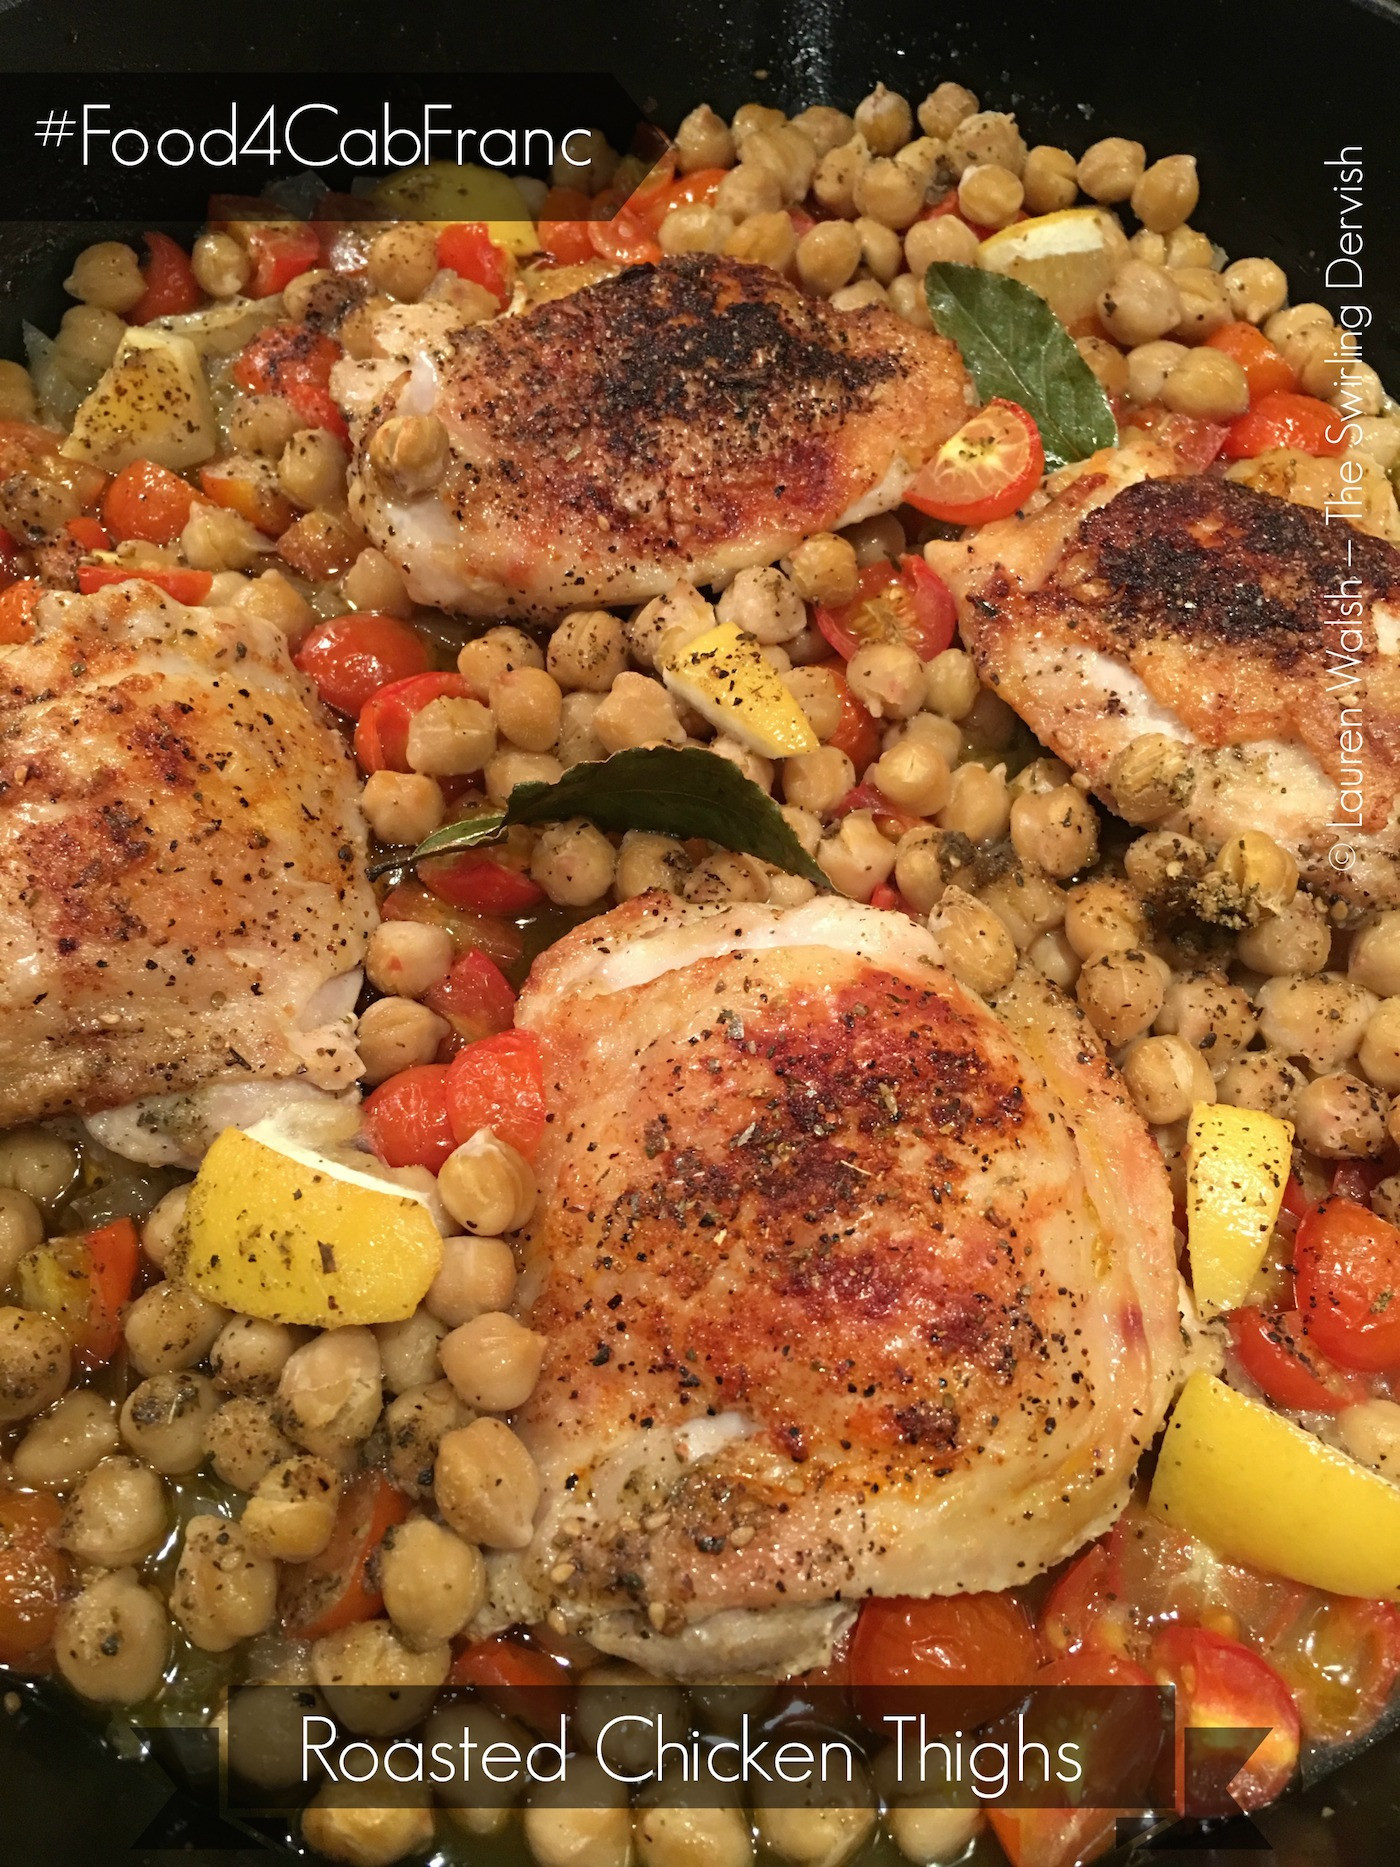 Roasted Chicken Thighs And Vegetables  Food4CabFranc 3 Roasted Chicken Thighs with Ve ables